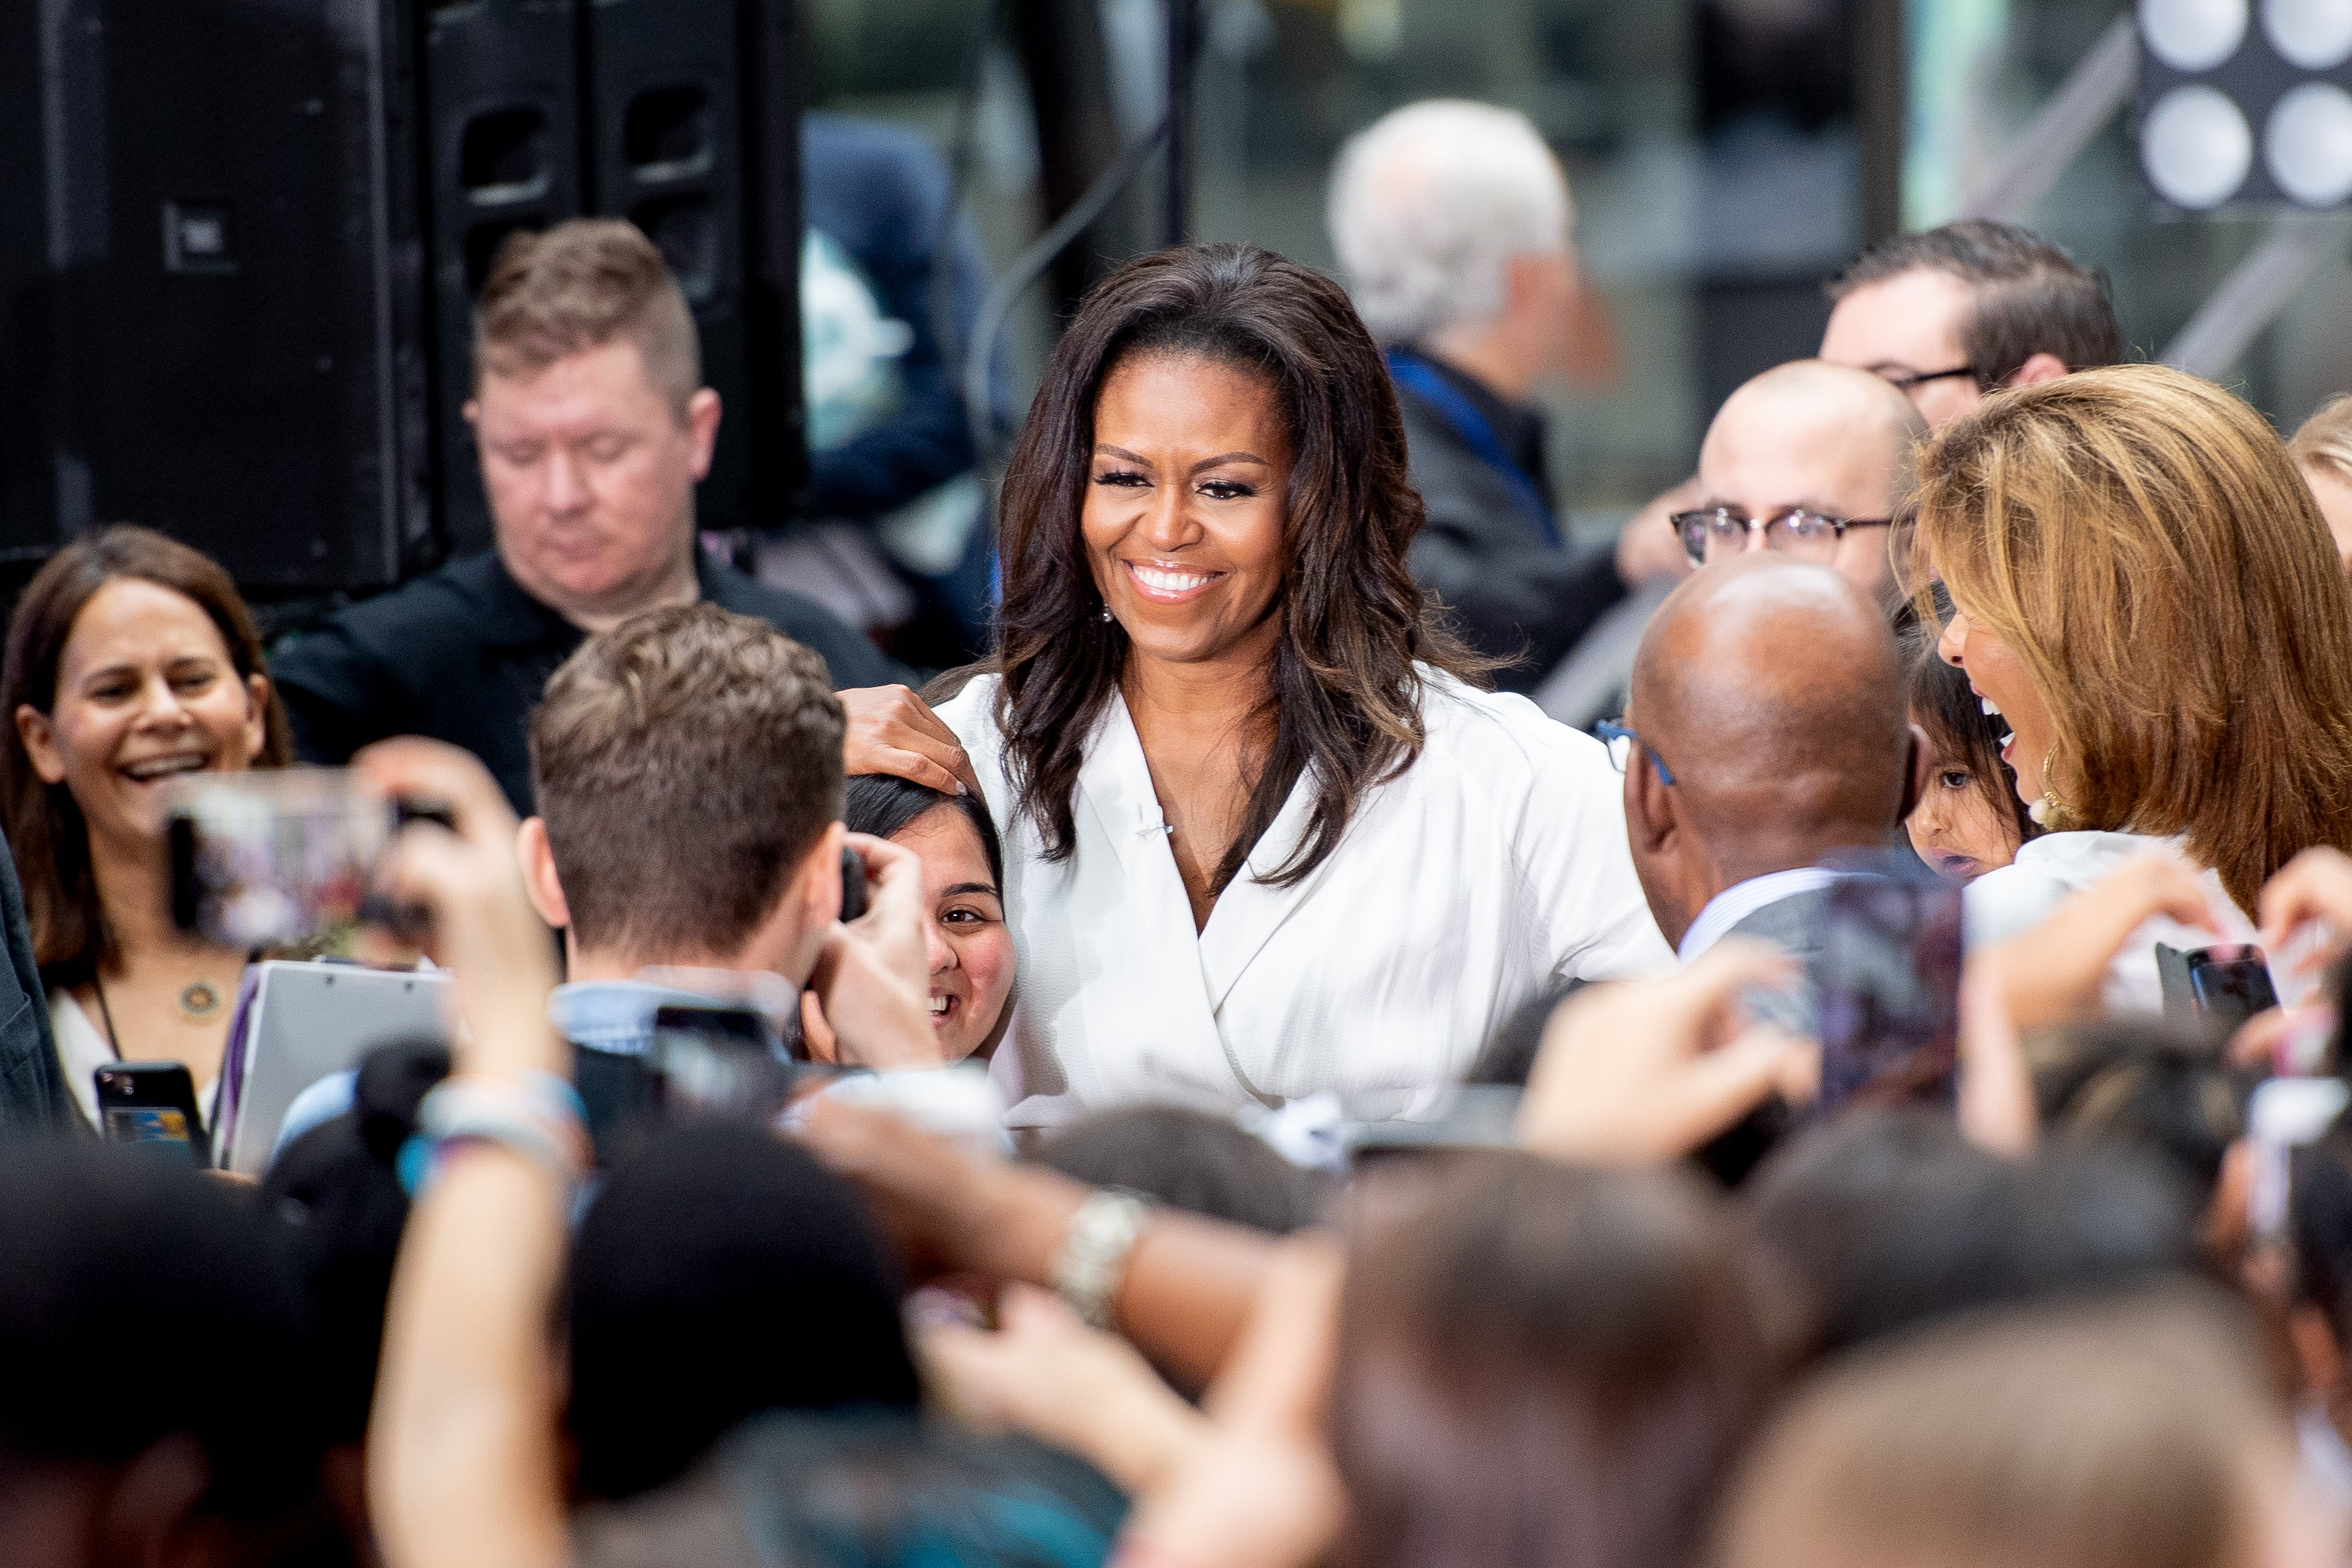 Michelle Obama attends NBC's 'Today' Celebrates The International Day Of The Girl at Rockefeller Plaza on October 11, 2018, in New York City.   Source: Getty Images.